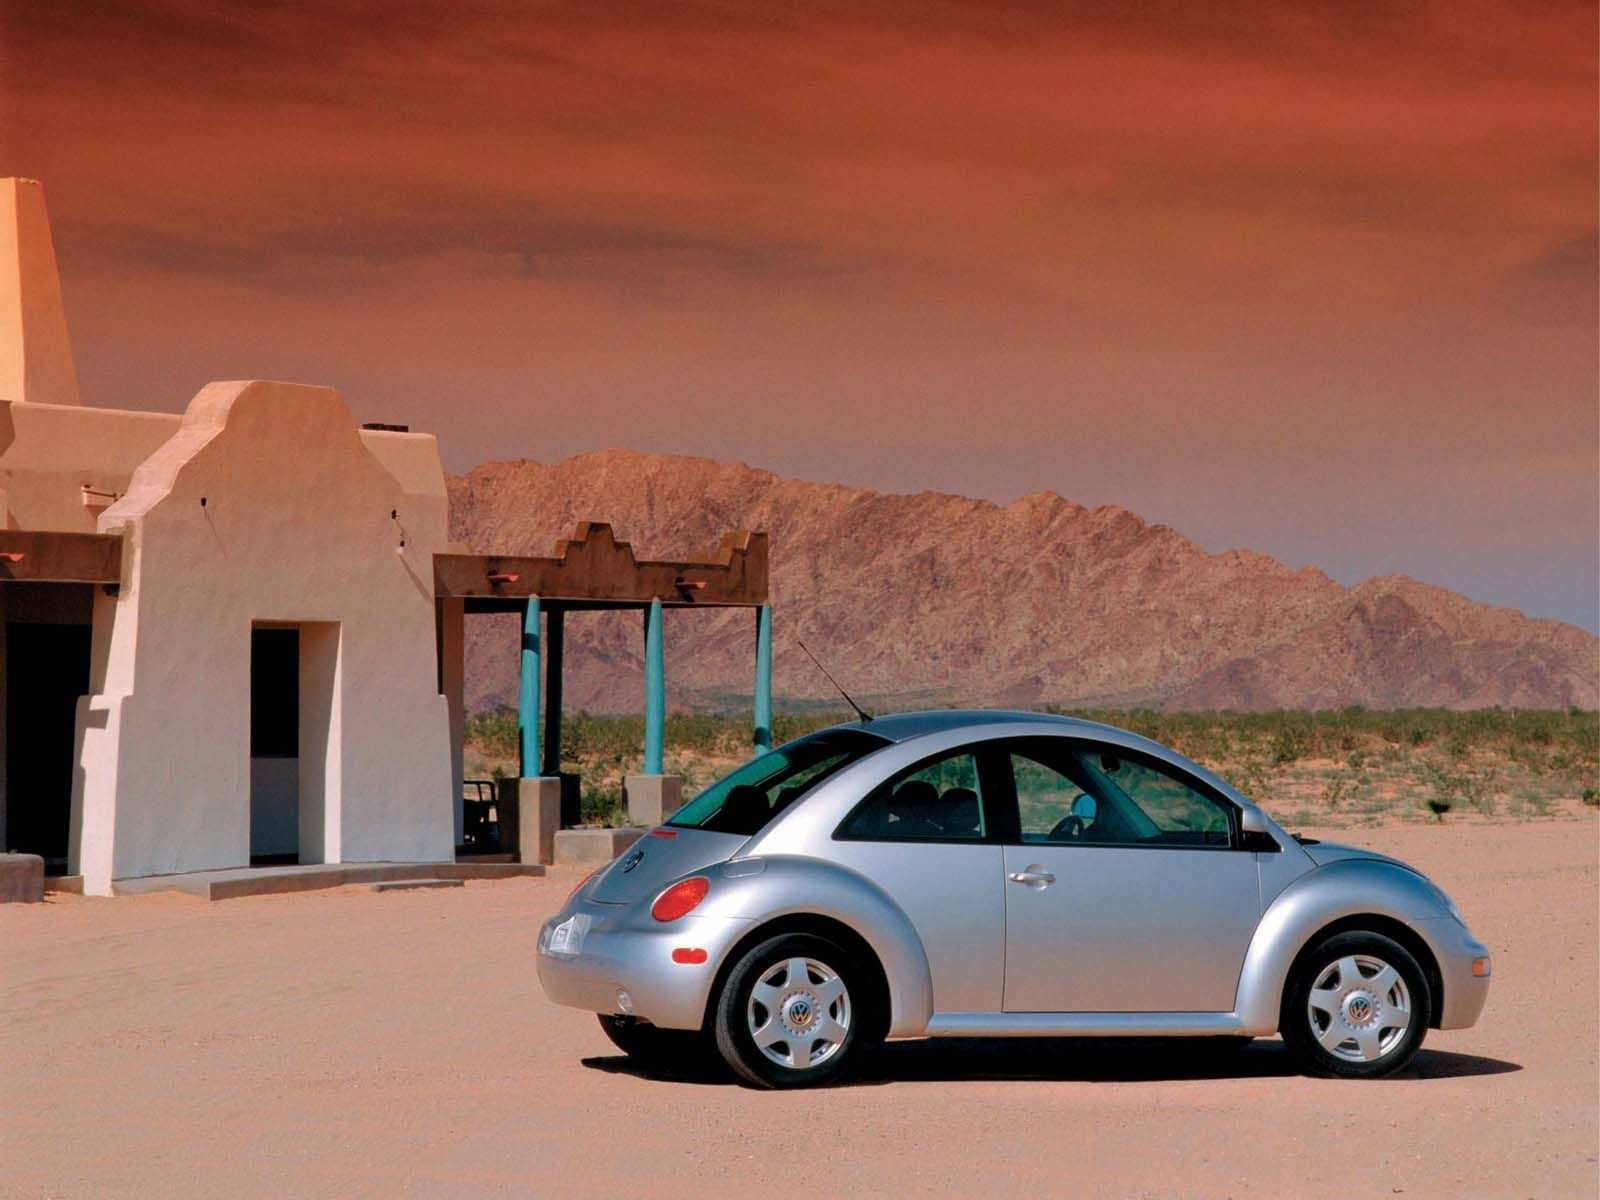 Latest Volkswagen Beetle Wallpaper And Background Image Free Download